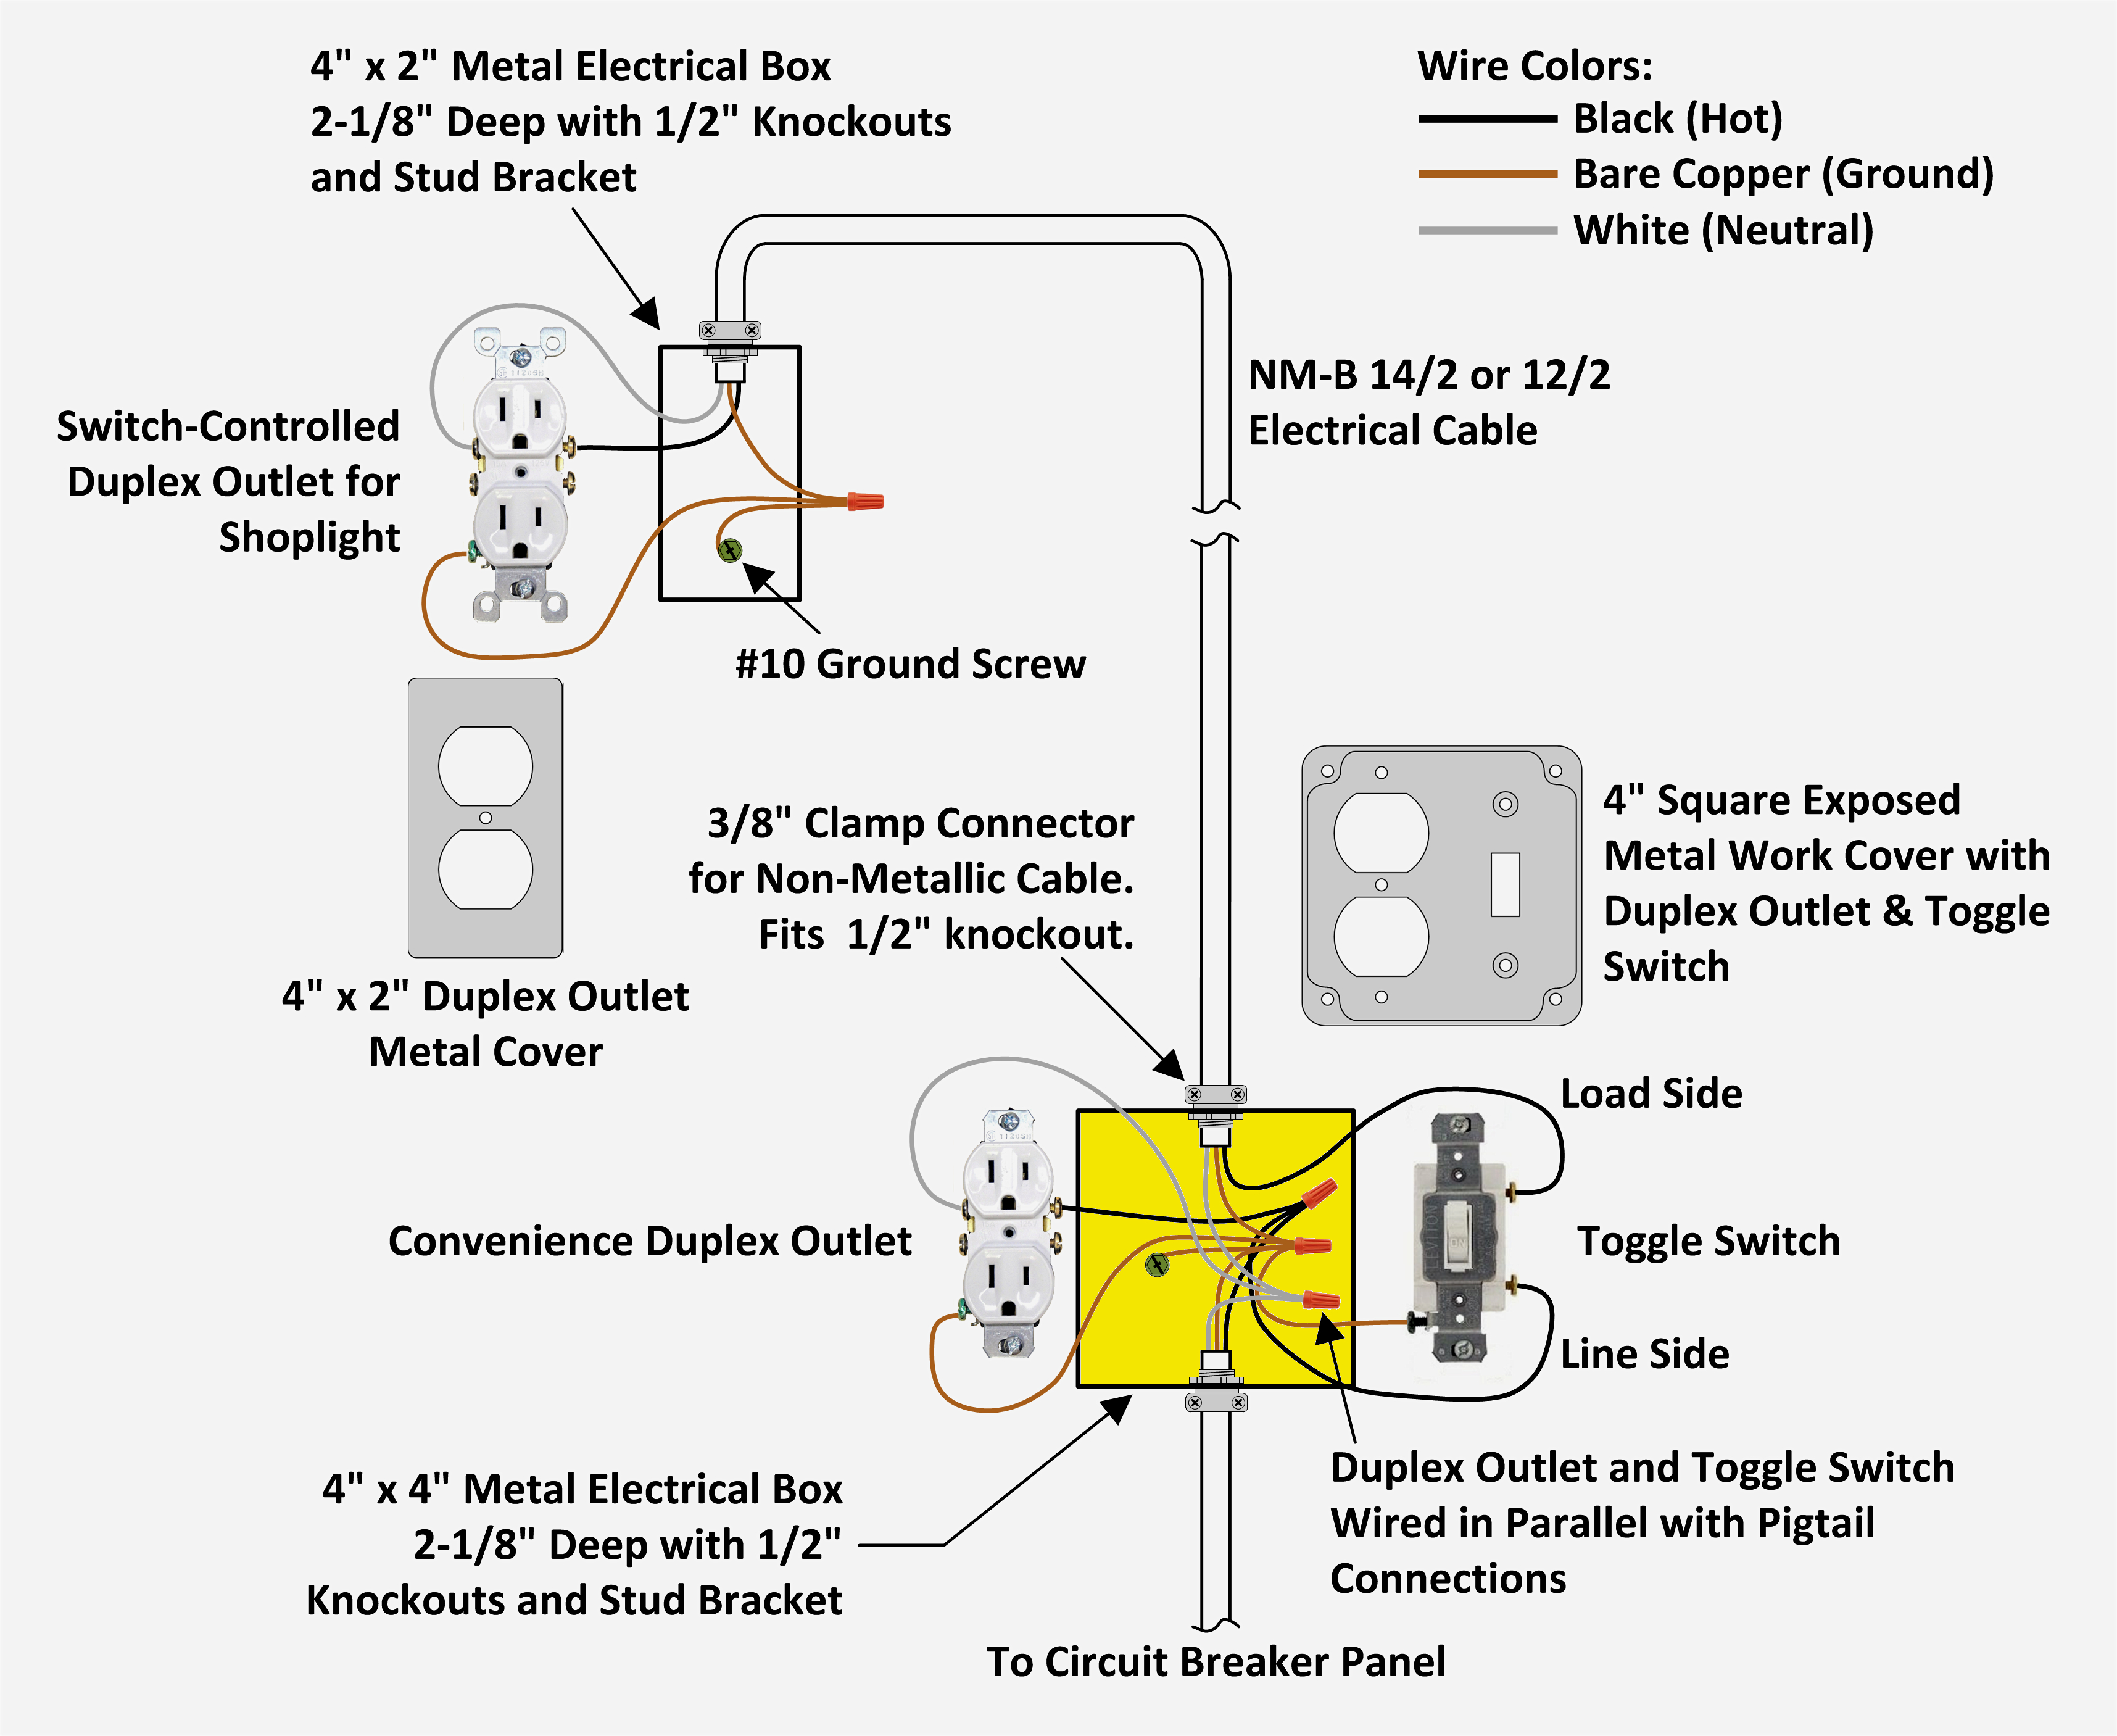 double pole toggle switch wiring diagram Collection-Double Pole Toggle Switch Wiring Diagram In Leviton And With 2 7-f